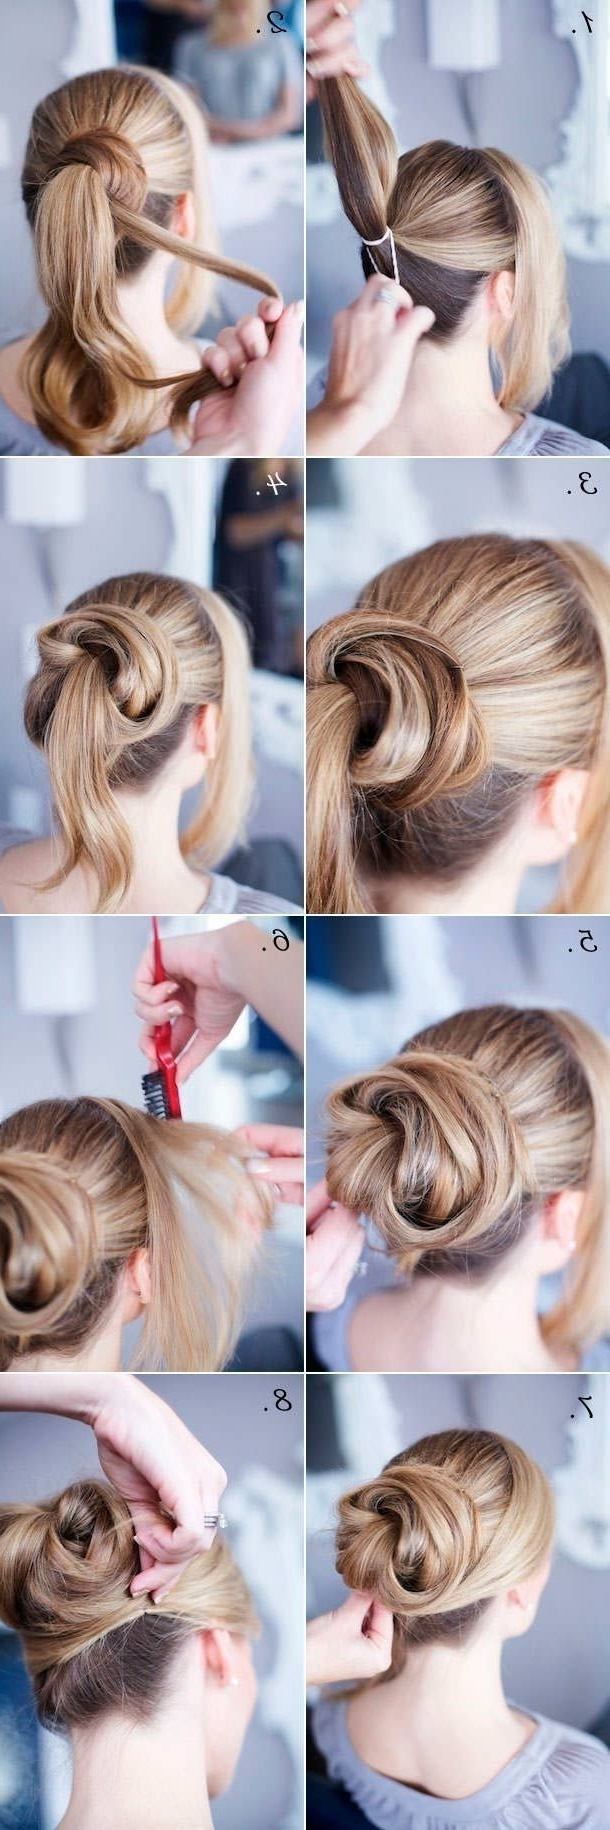 12 Trendy Low Bun Updo Hairstyles Tutorials: Easy Cute – Popular Regarding Quick Updo Hairstyles For Long Hair (View 3 of 15)